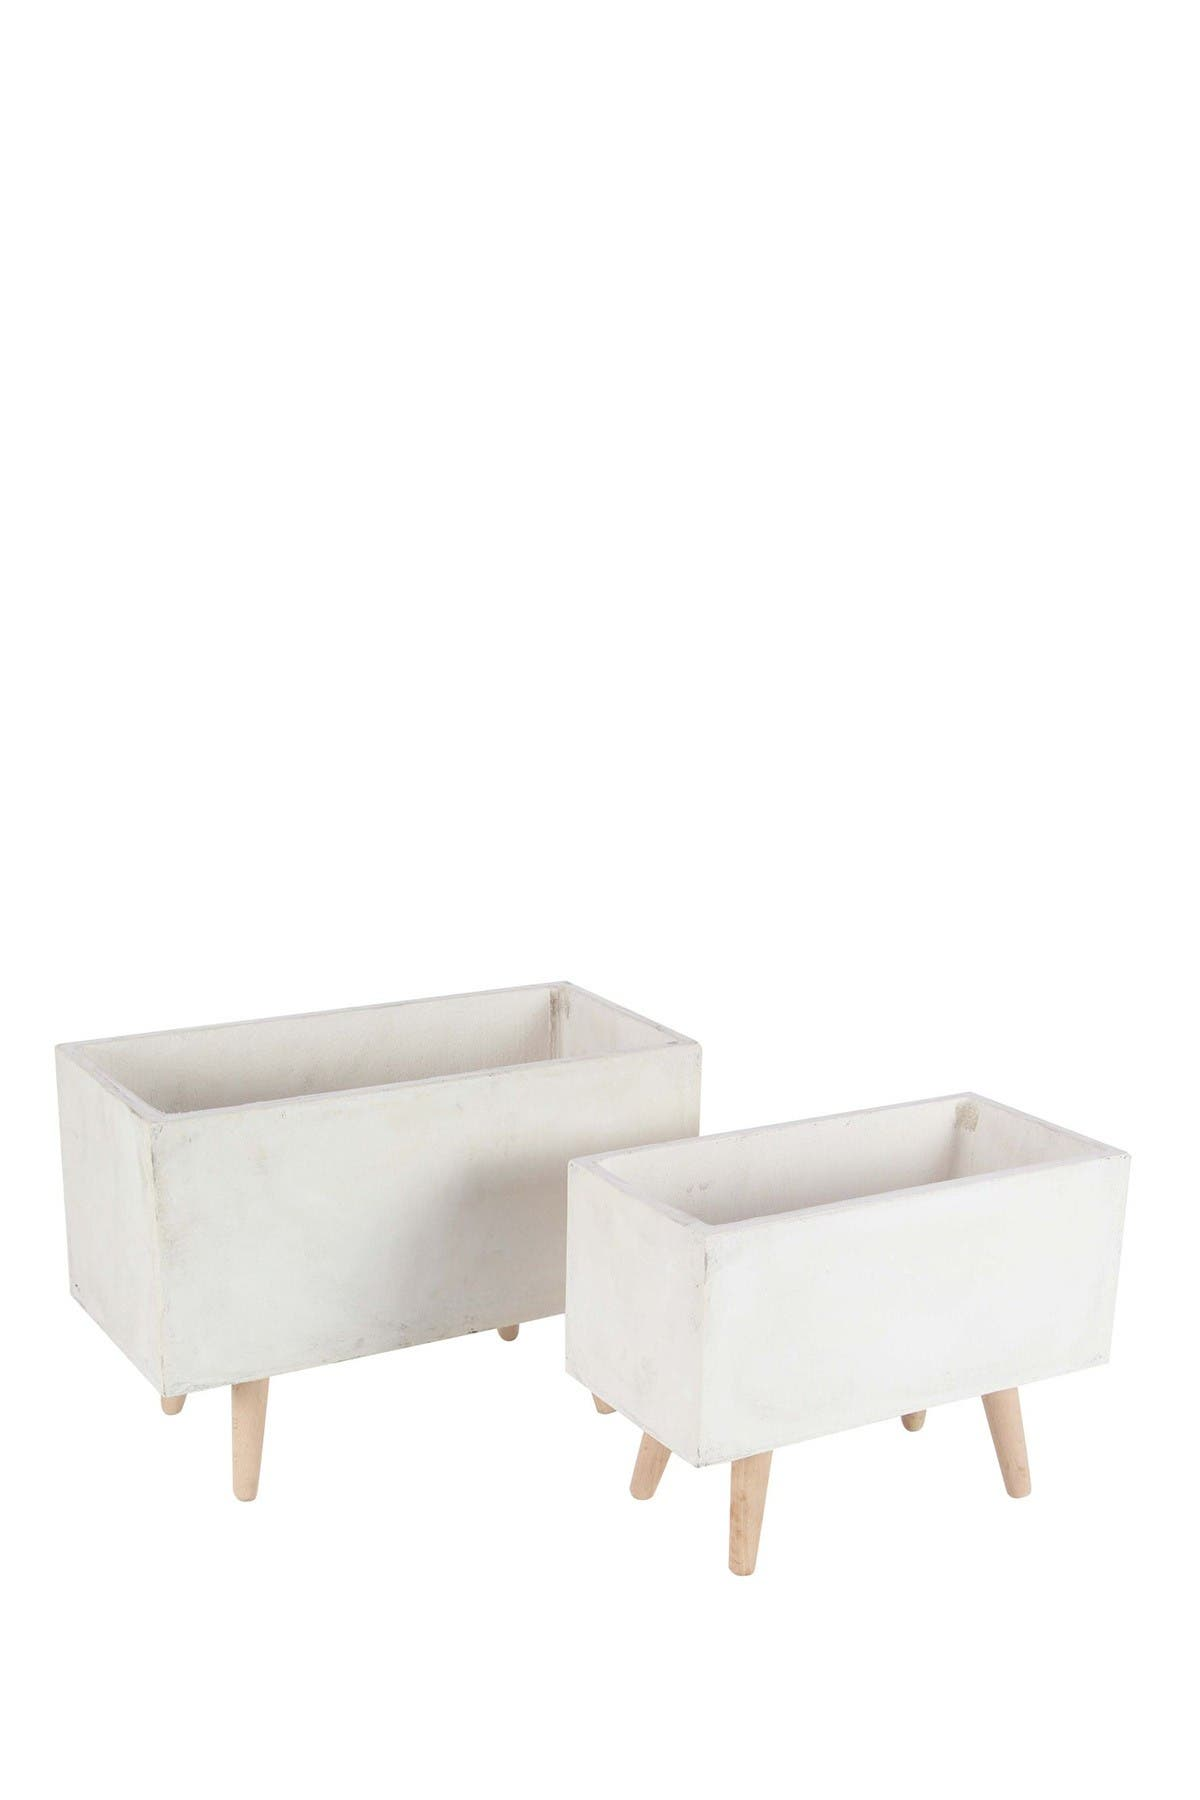 Image of Willow Row White Clay Planter - Set of 2